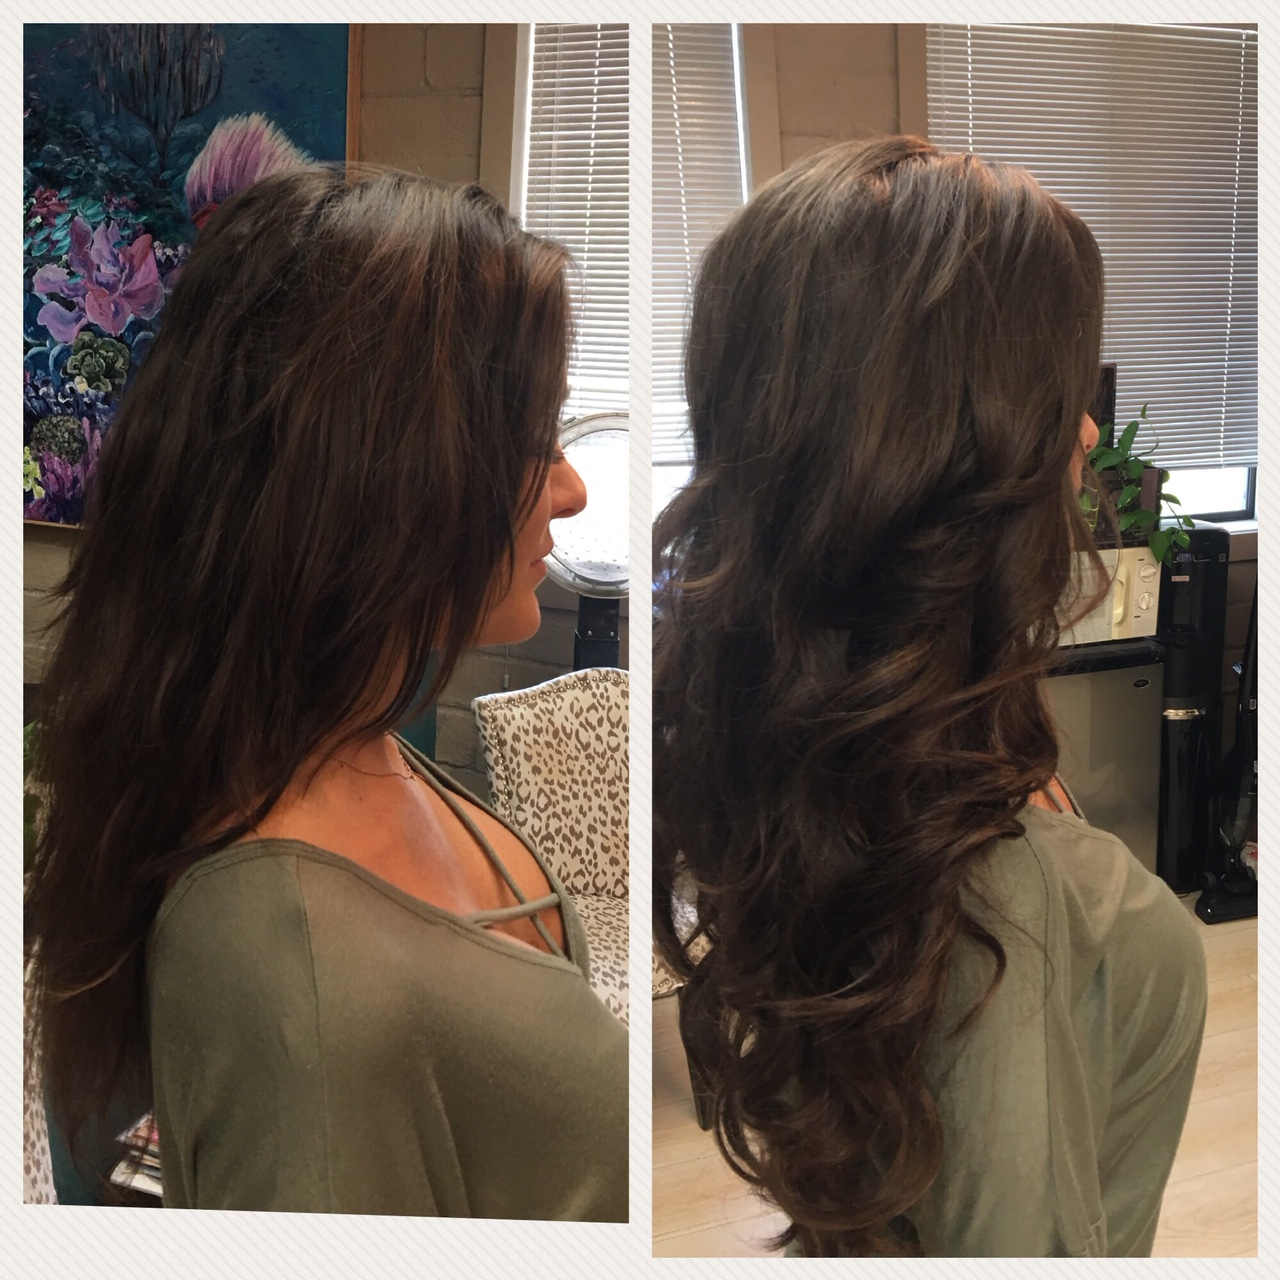 Before and After image of long full thick dark brown wavy hair extensions-hair salon solana beach -Salon LG-+1 858 344 7865.